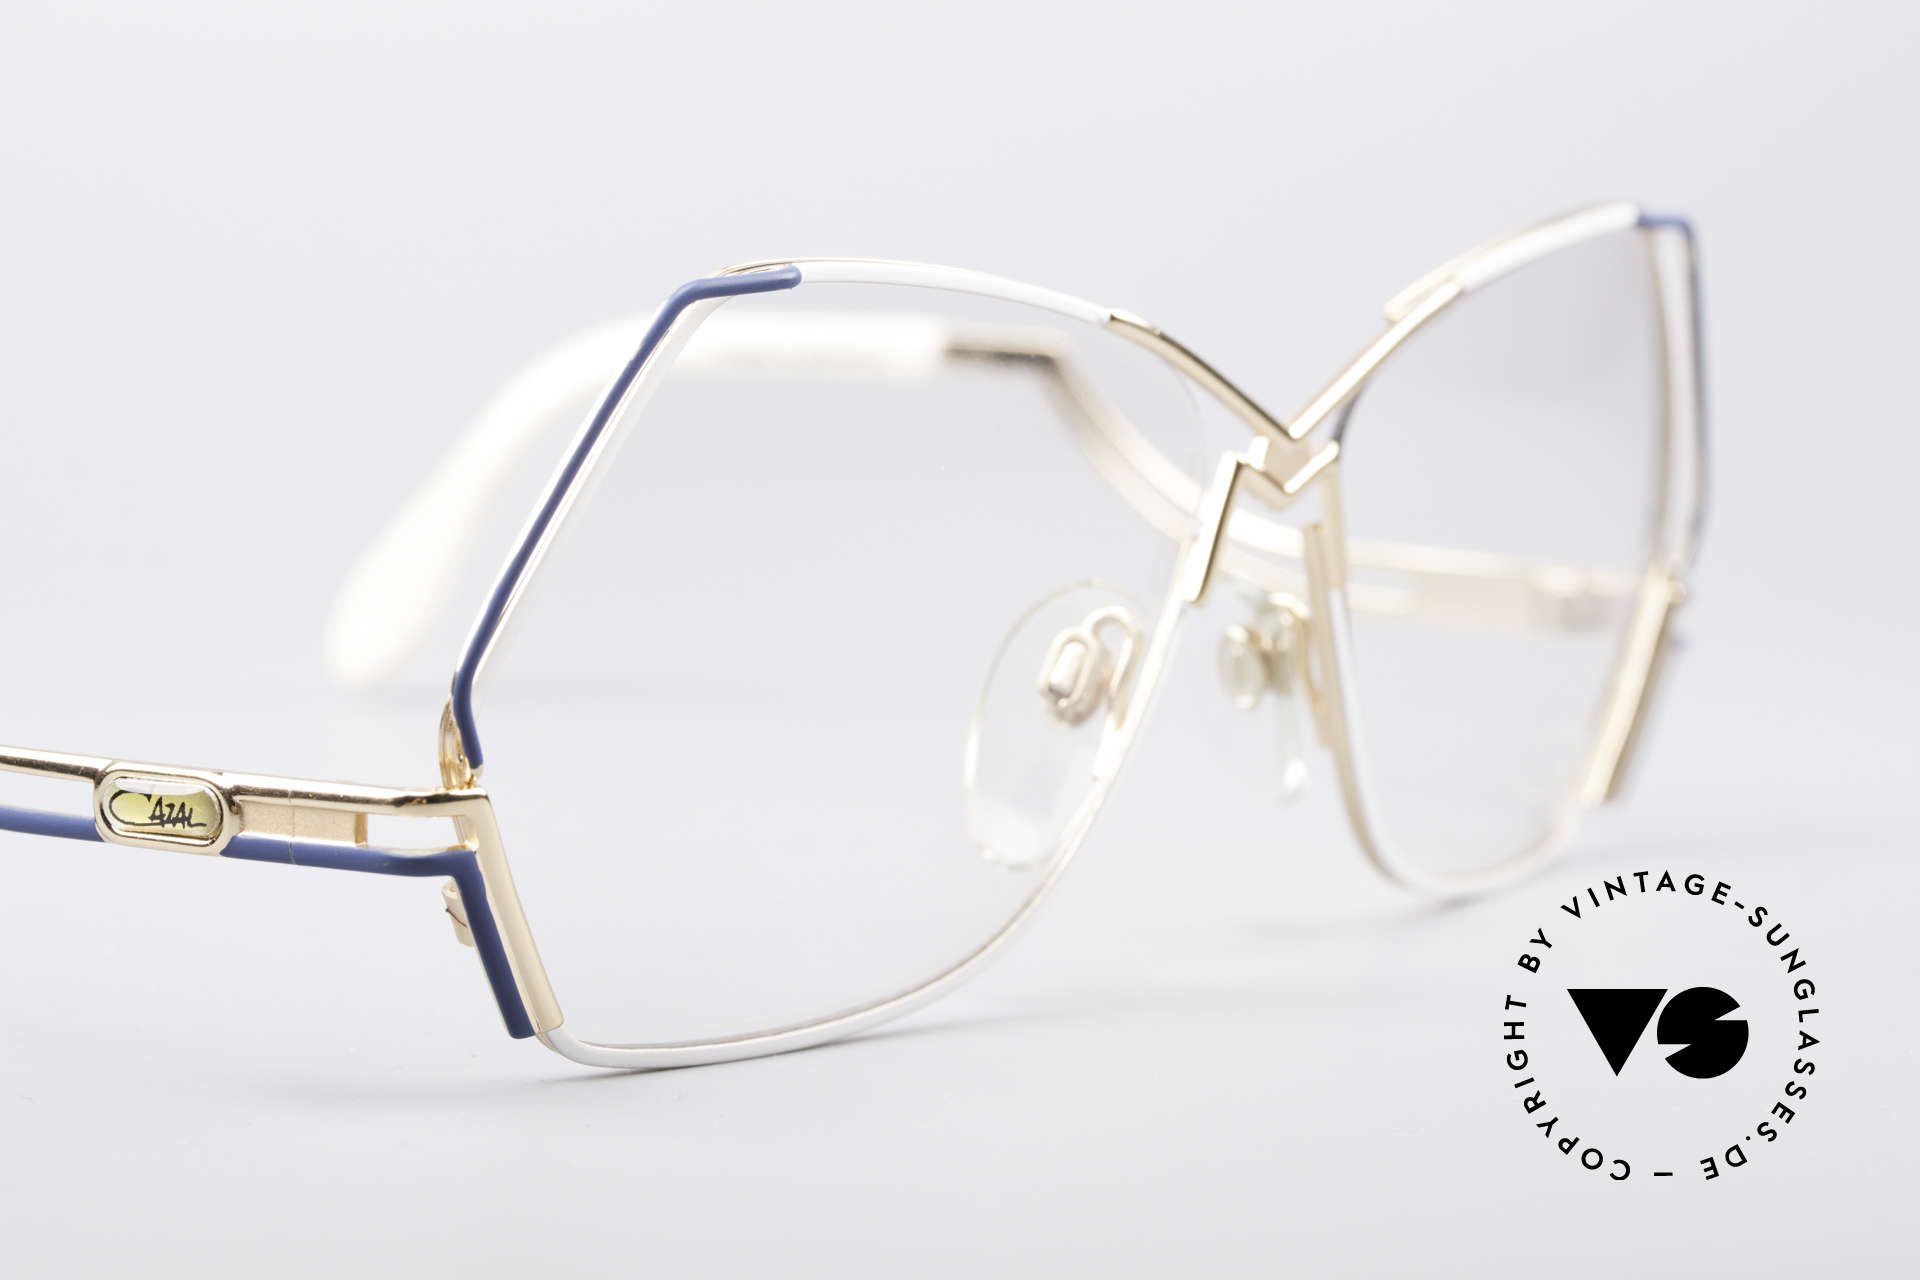 Cazal 226 West Germany Vintage Glasses, new old stock, NOS (like all our rare old Cazal eyewear), Made for Women